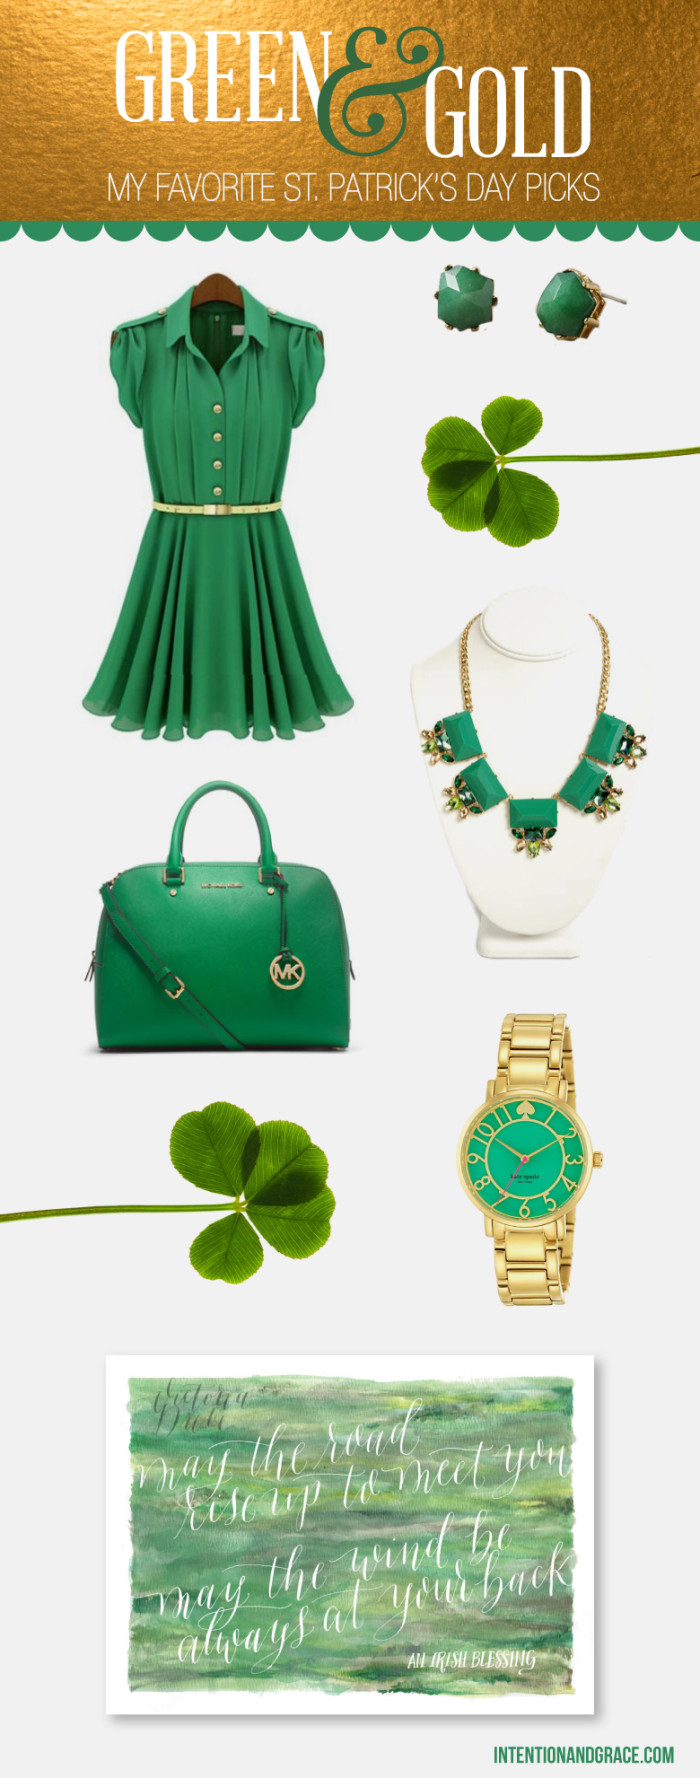 St-Patricks-Day-Green-Gold-Accessories-Intention_Grace